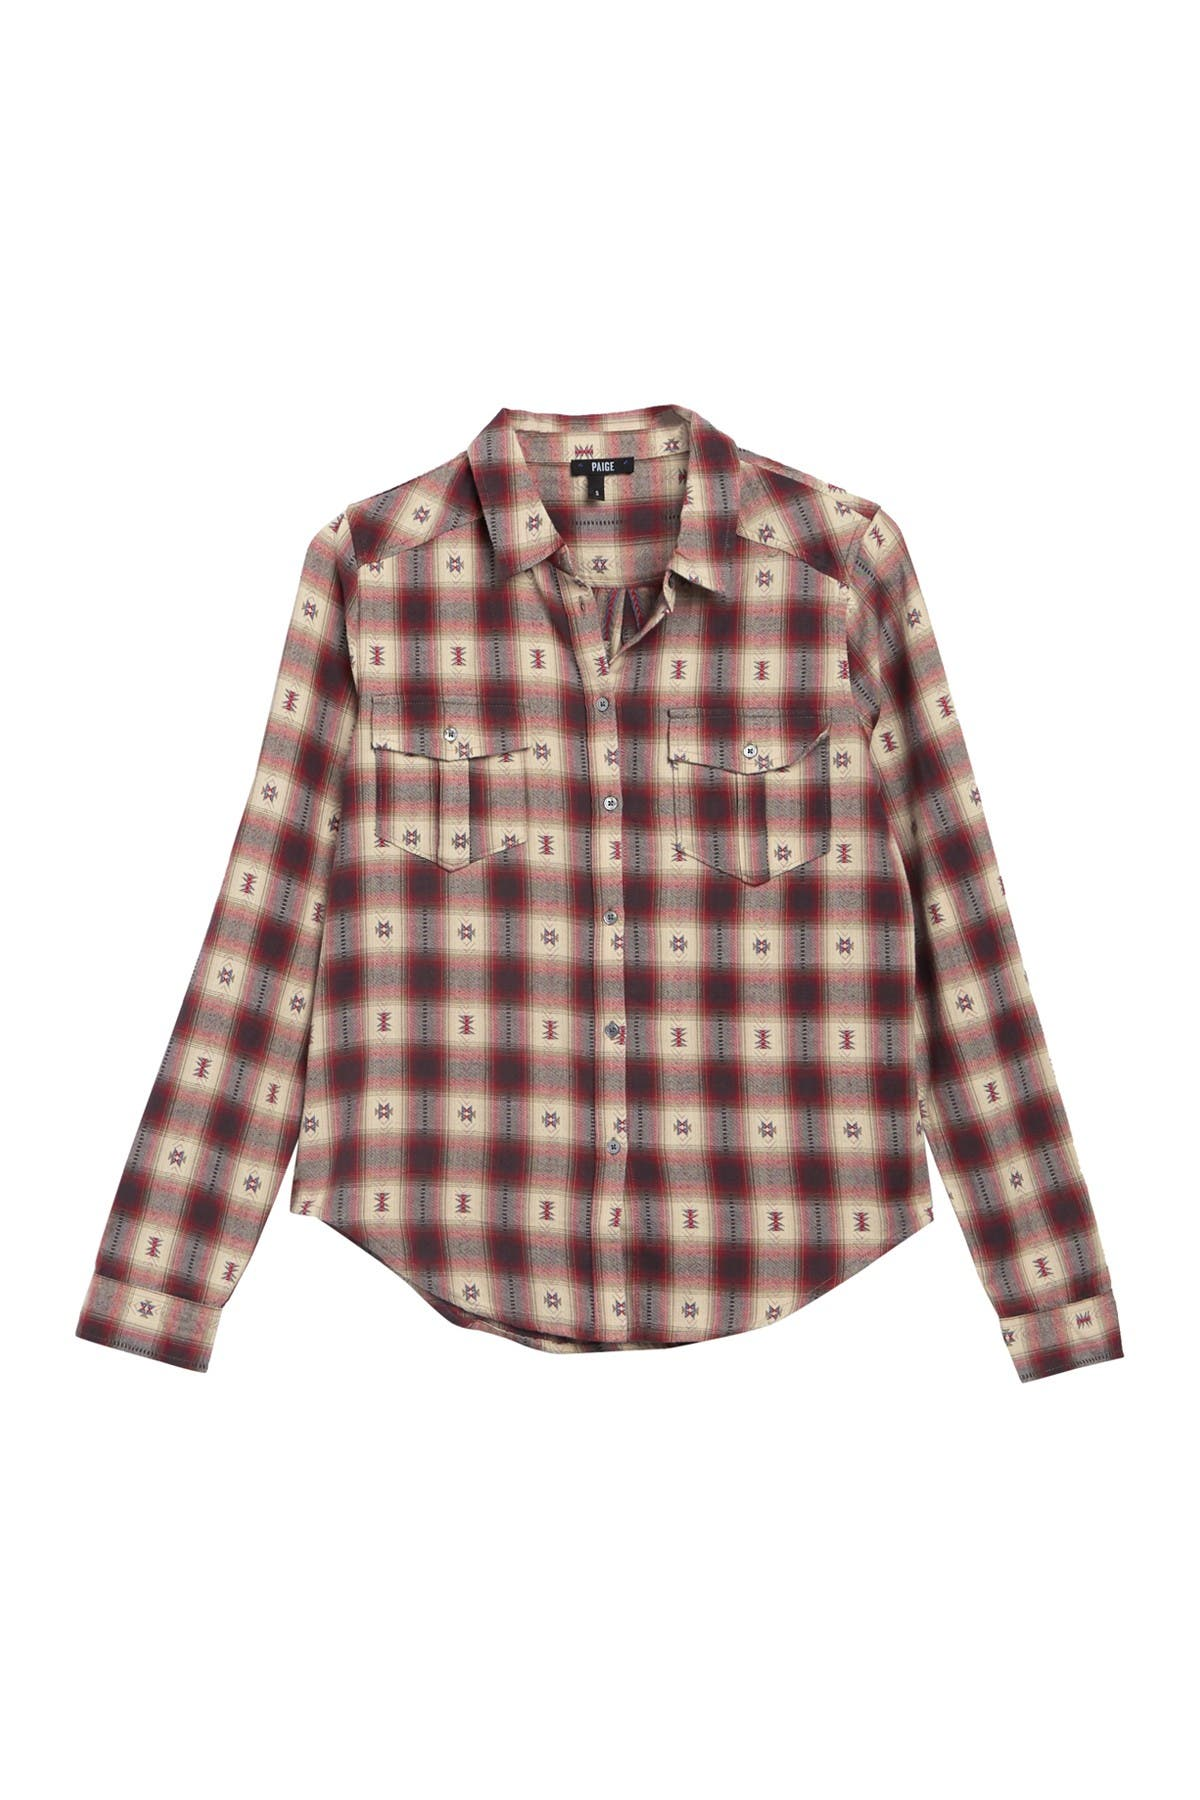 Image of PAIGE Mya Plaid Shirt